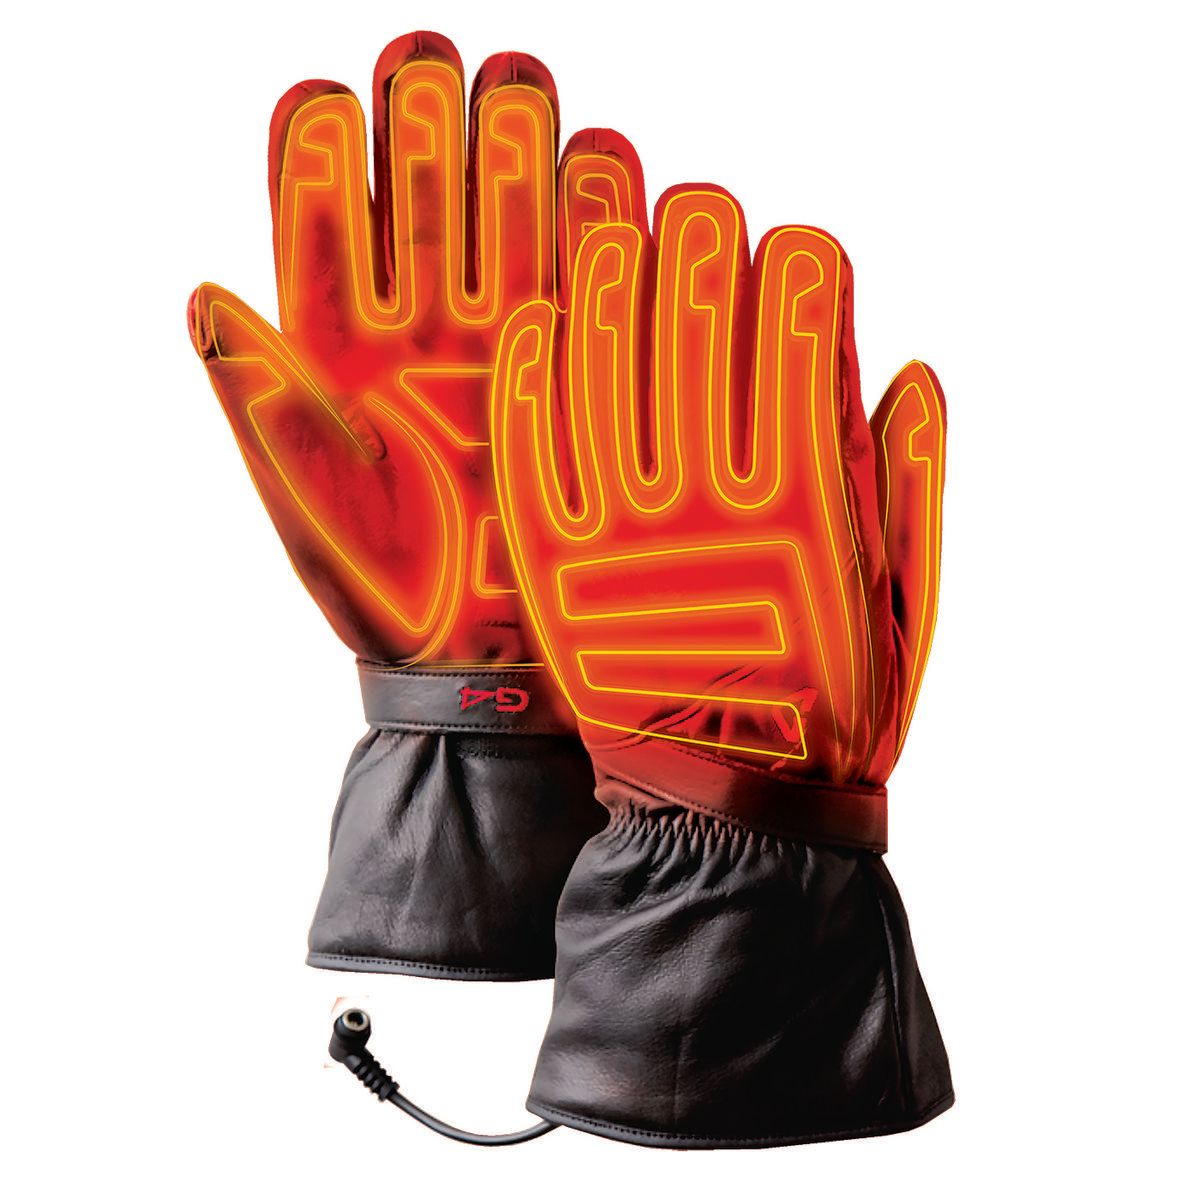 7V Rechargeable Battery Powered Electric Heat Gloves Gerbing Gyde S7 Women/'s Heated Gloves Motorcycle Riding Skiing Hands Warmer for Cold Weather Hunting Outdoor Camping Black